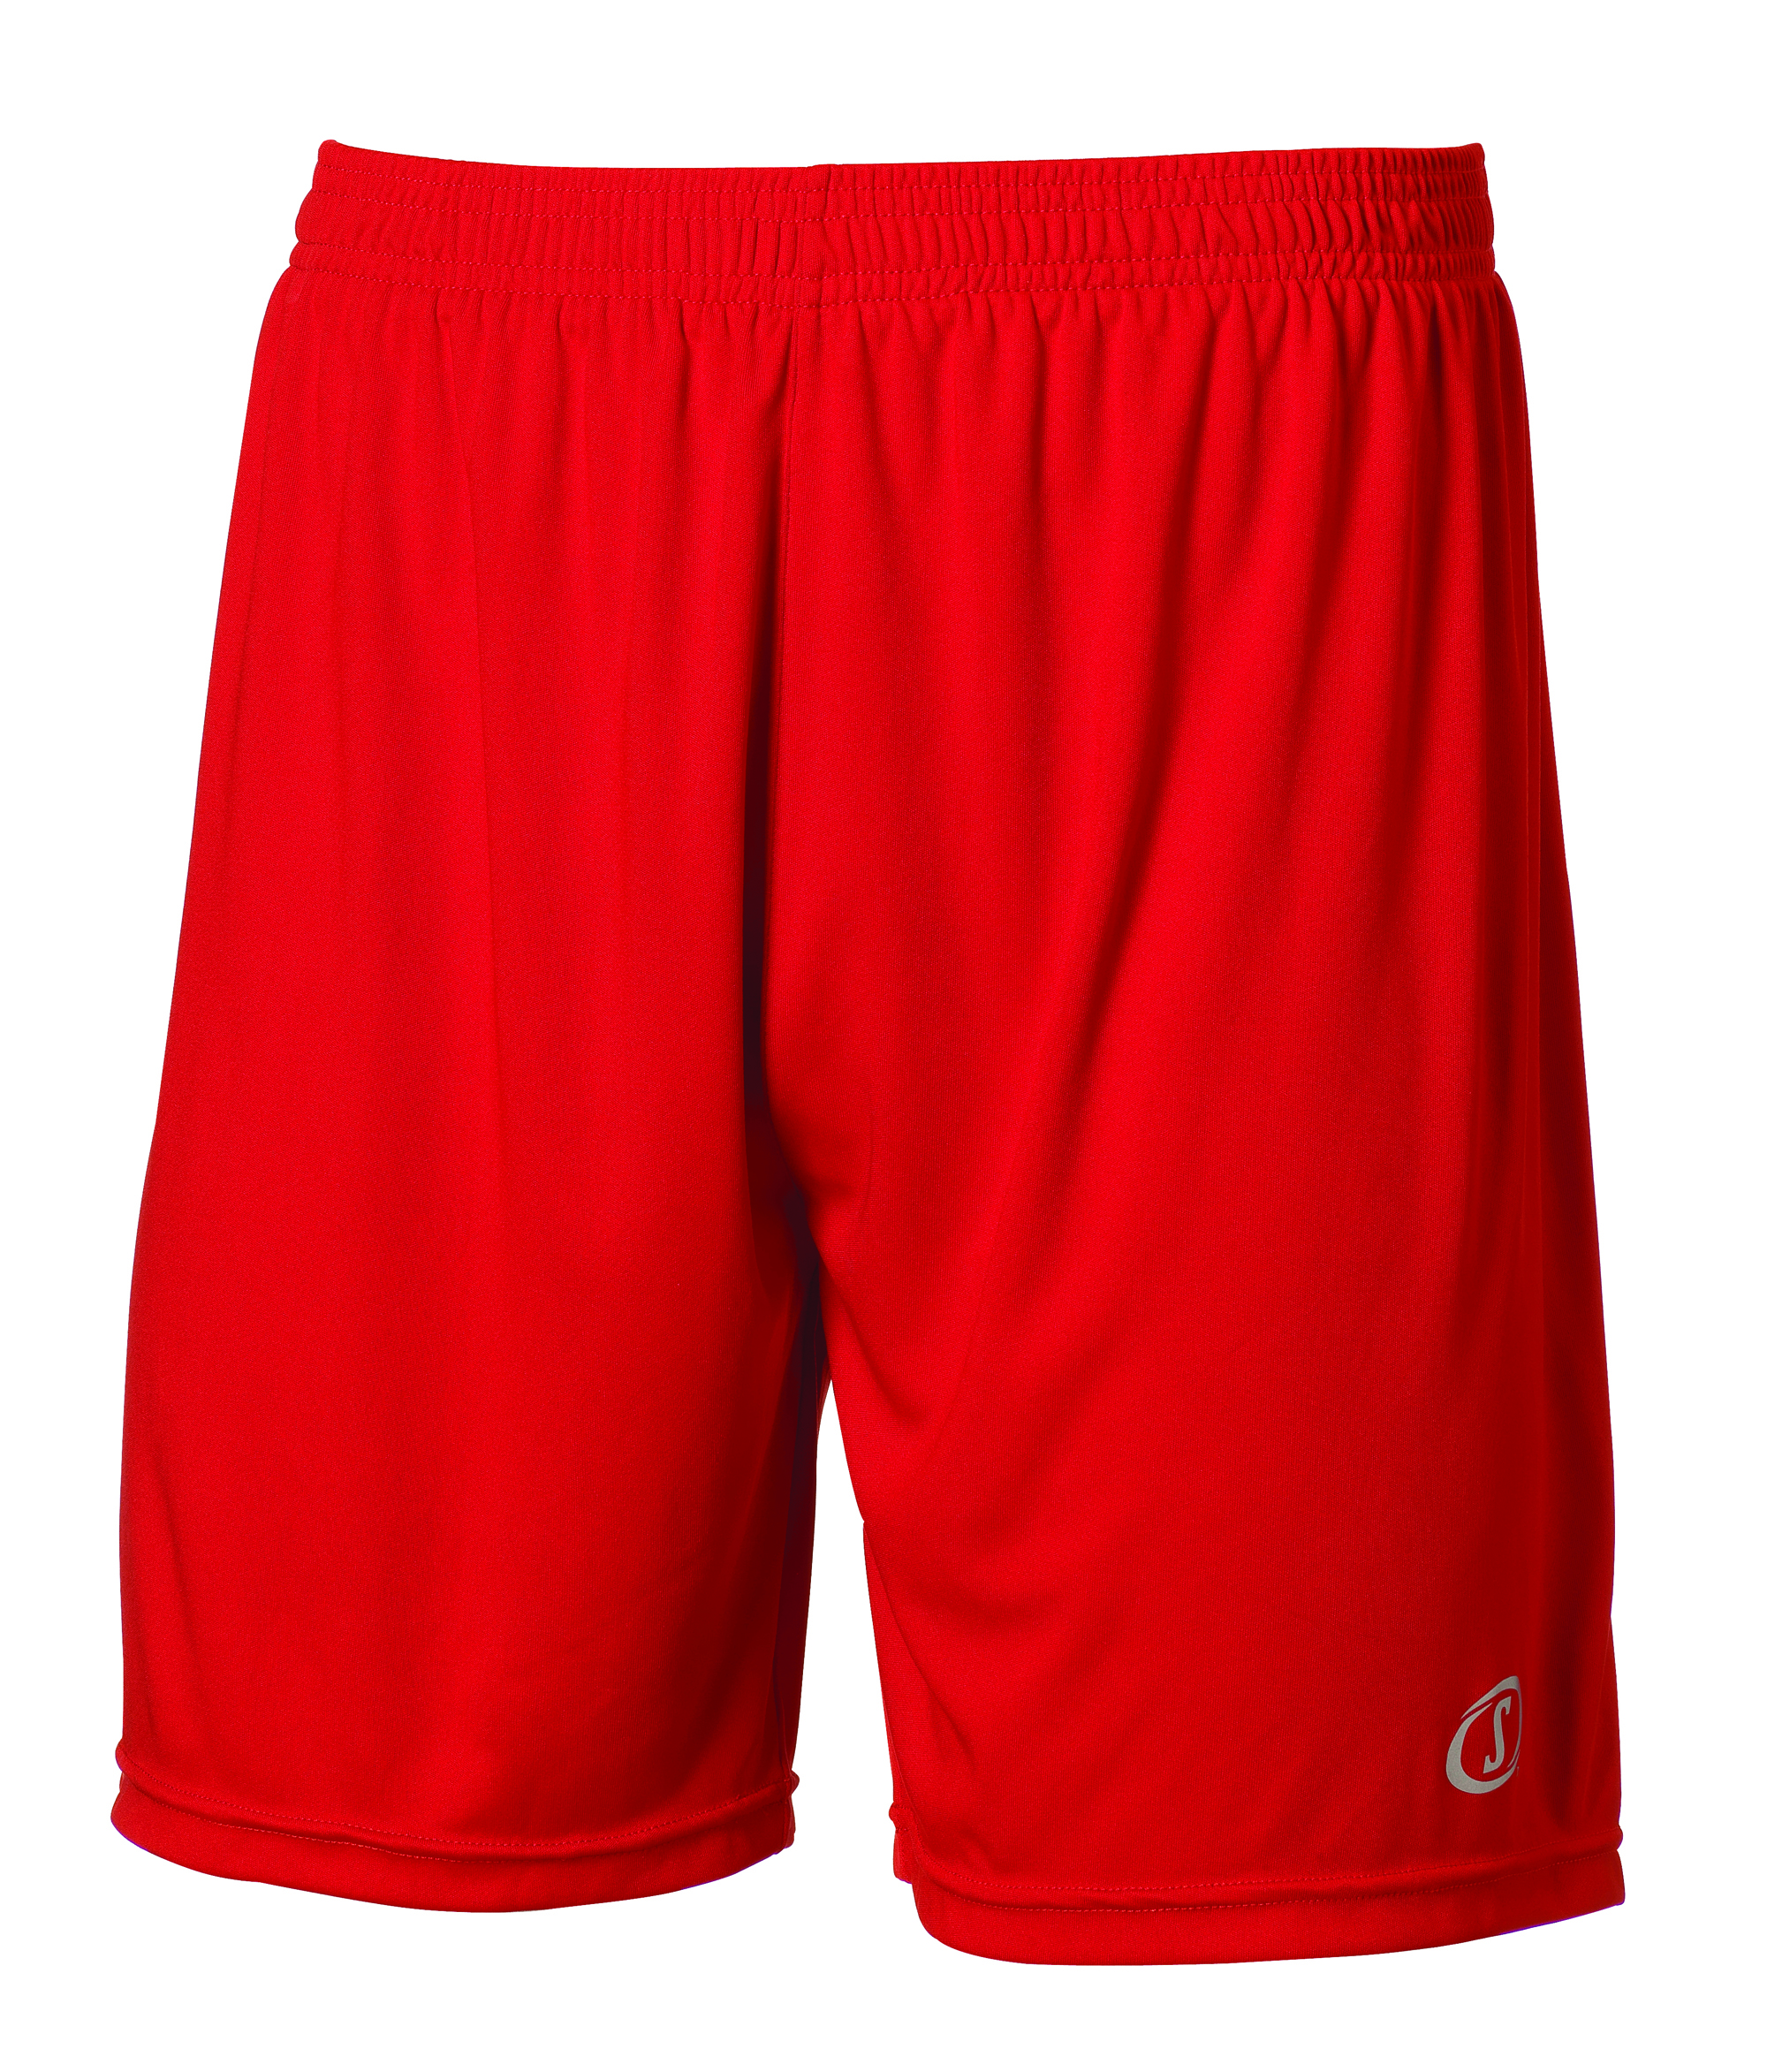 Core Training Shorts - Red - S